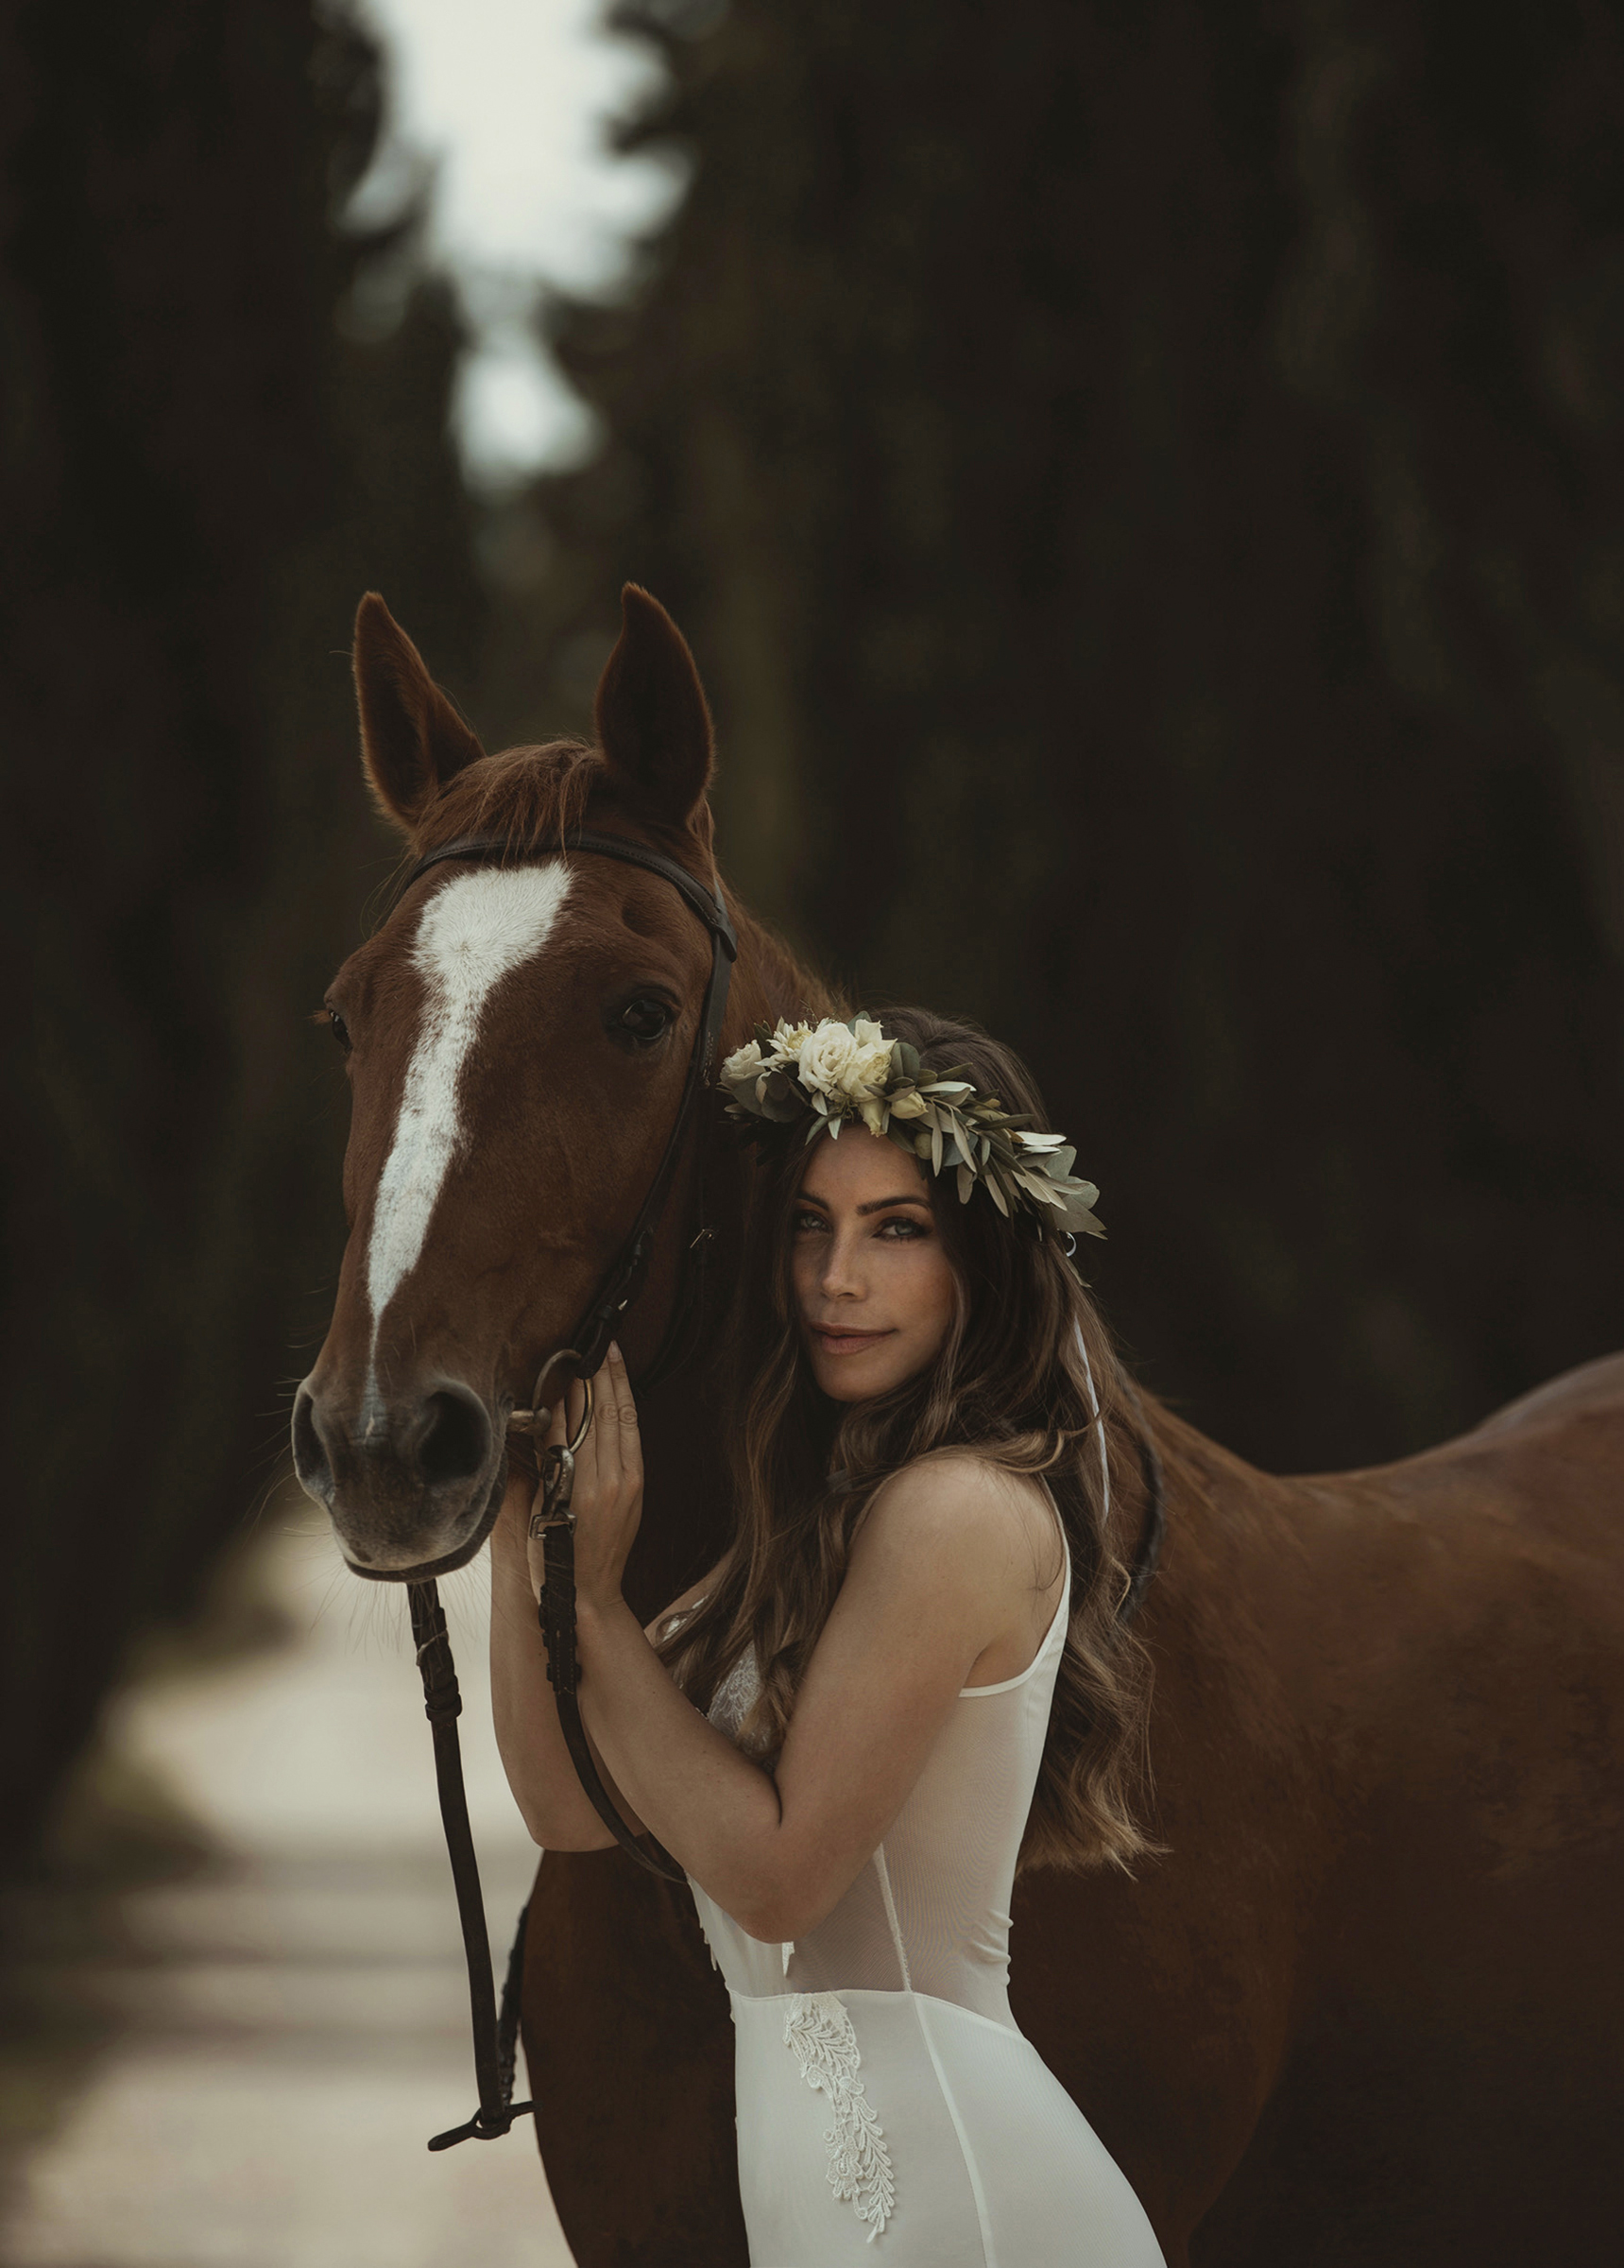 Bride with horse - photo by Frøydis